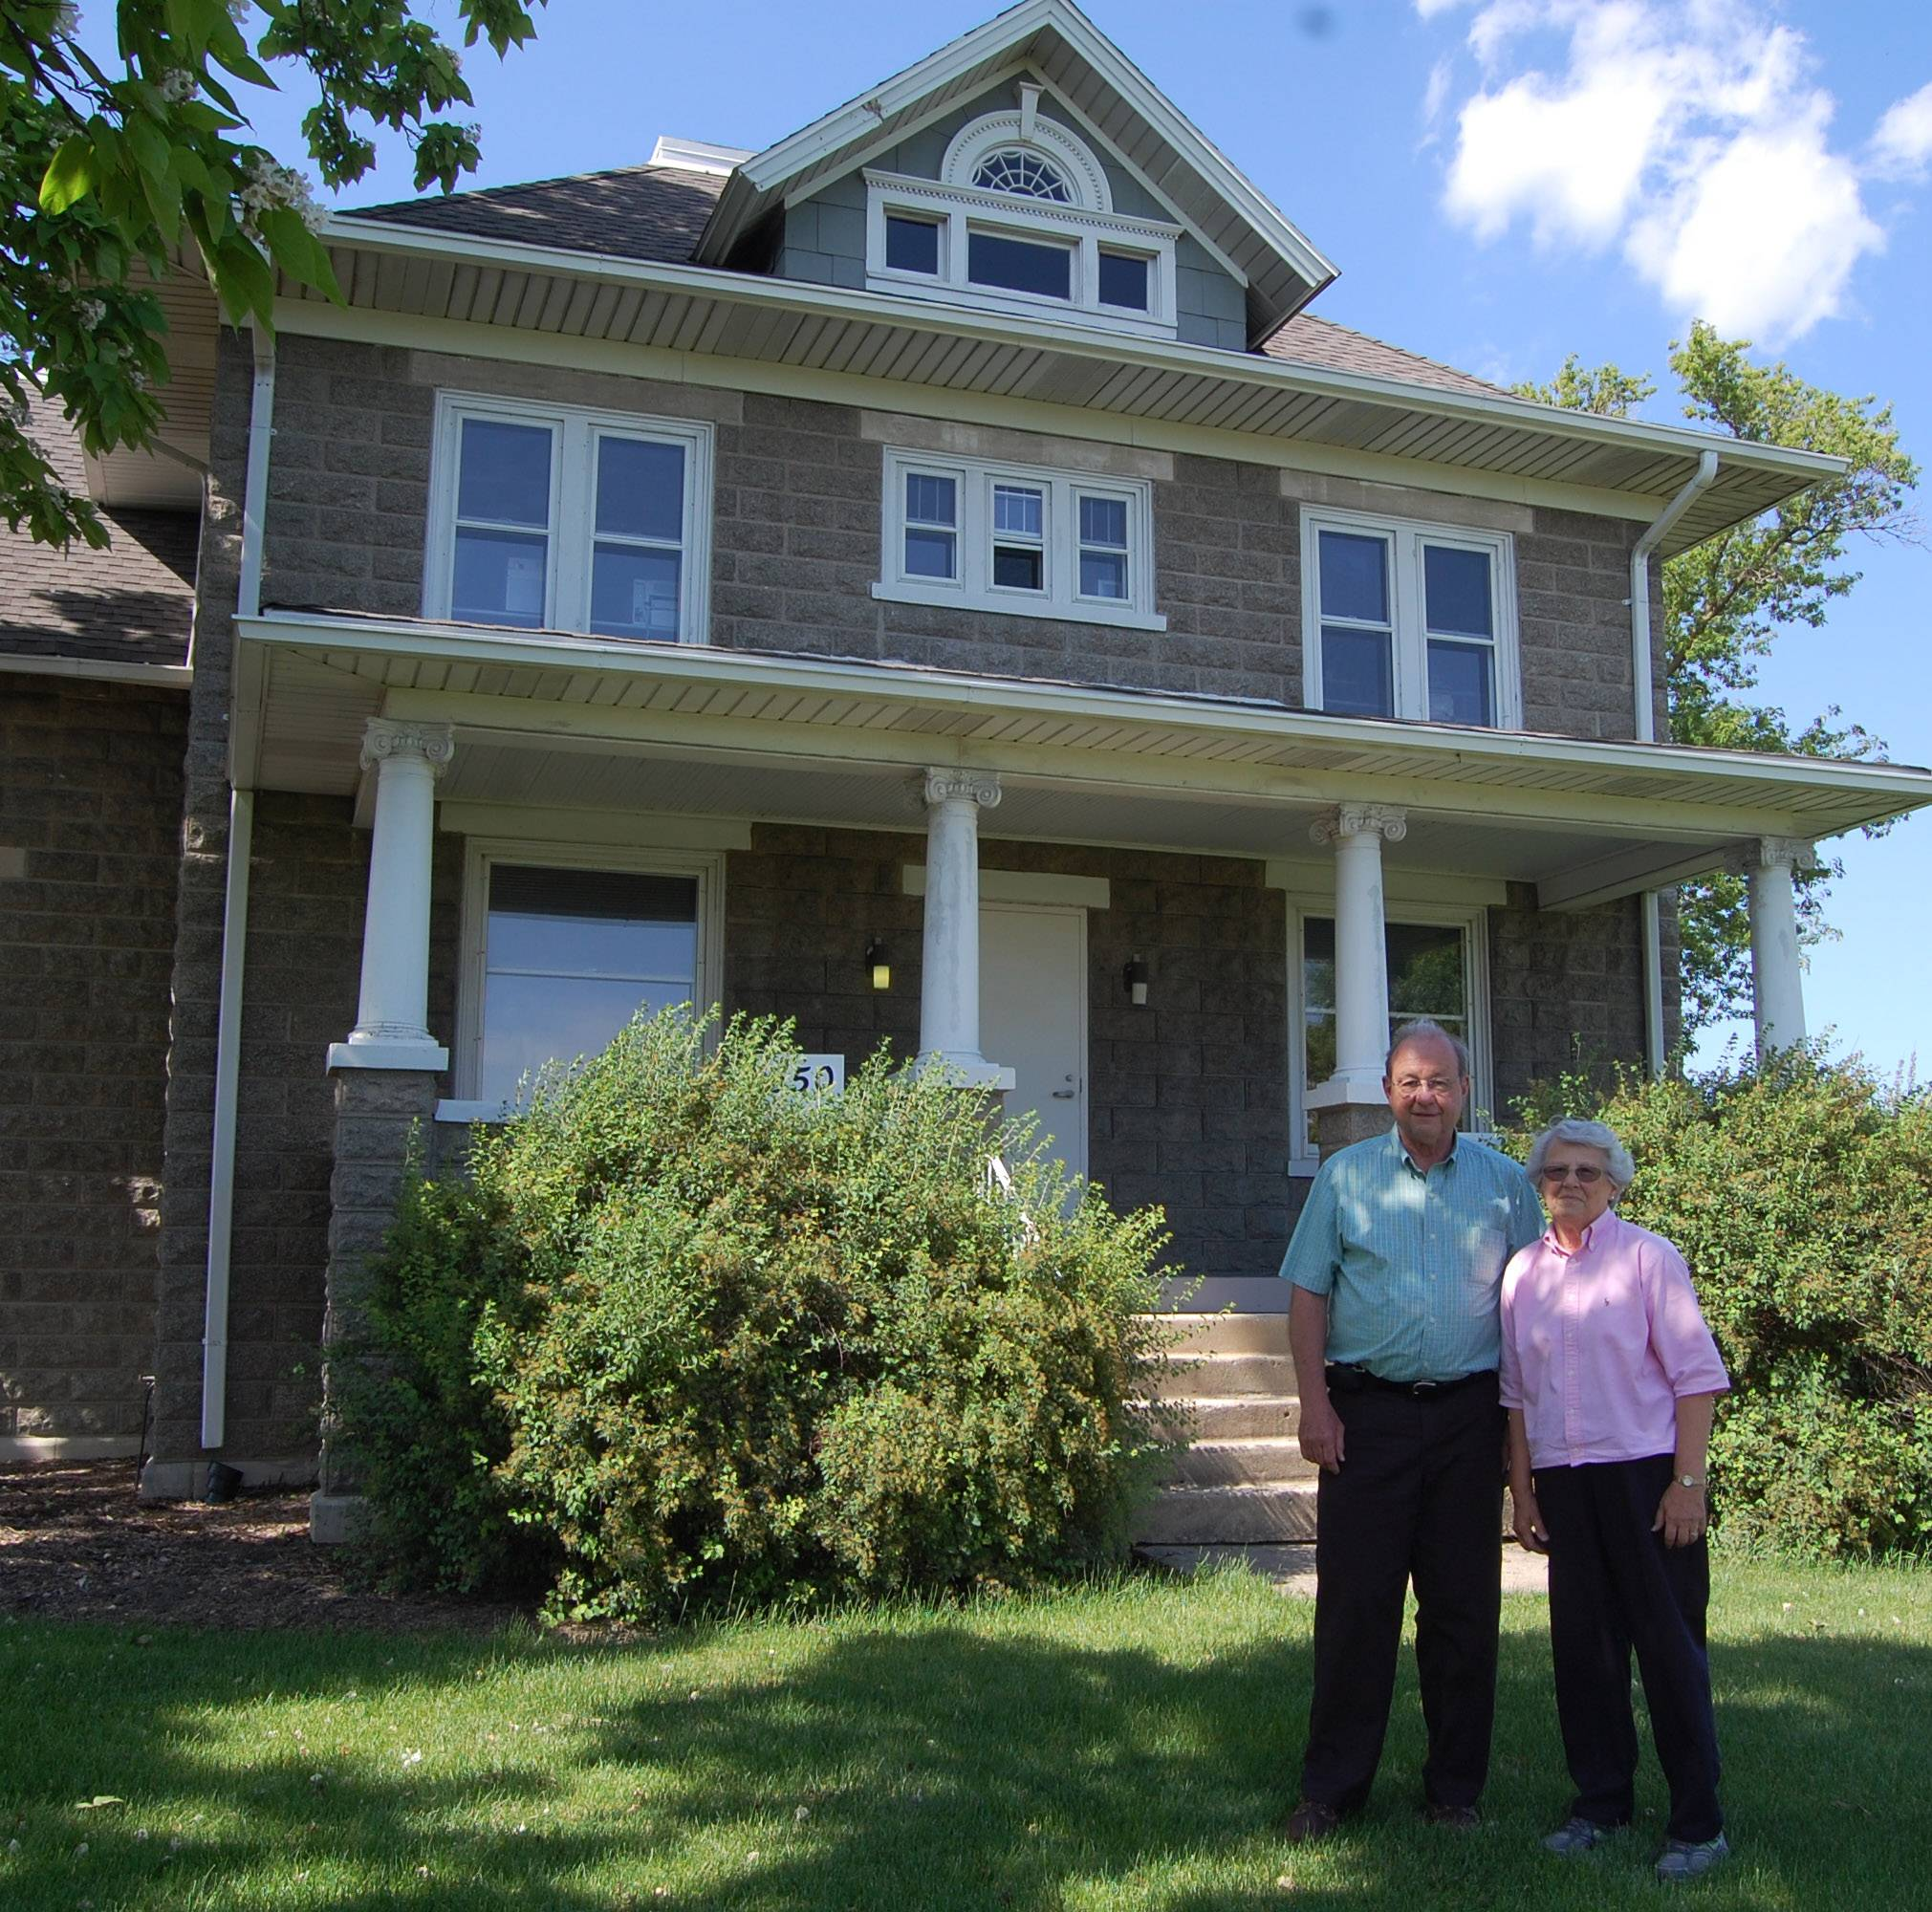 Warren Sunderlage, who celebrated his 50th wedding anniversary with a family reunion last weekend in Hoffman Estates, meets with his cousin, and family historian, Betty Sunderlage Getzelman of Bountiful, Utah. They are standing in front of the family home in Hoffman Estates